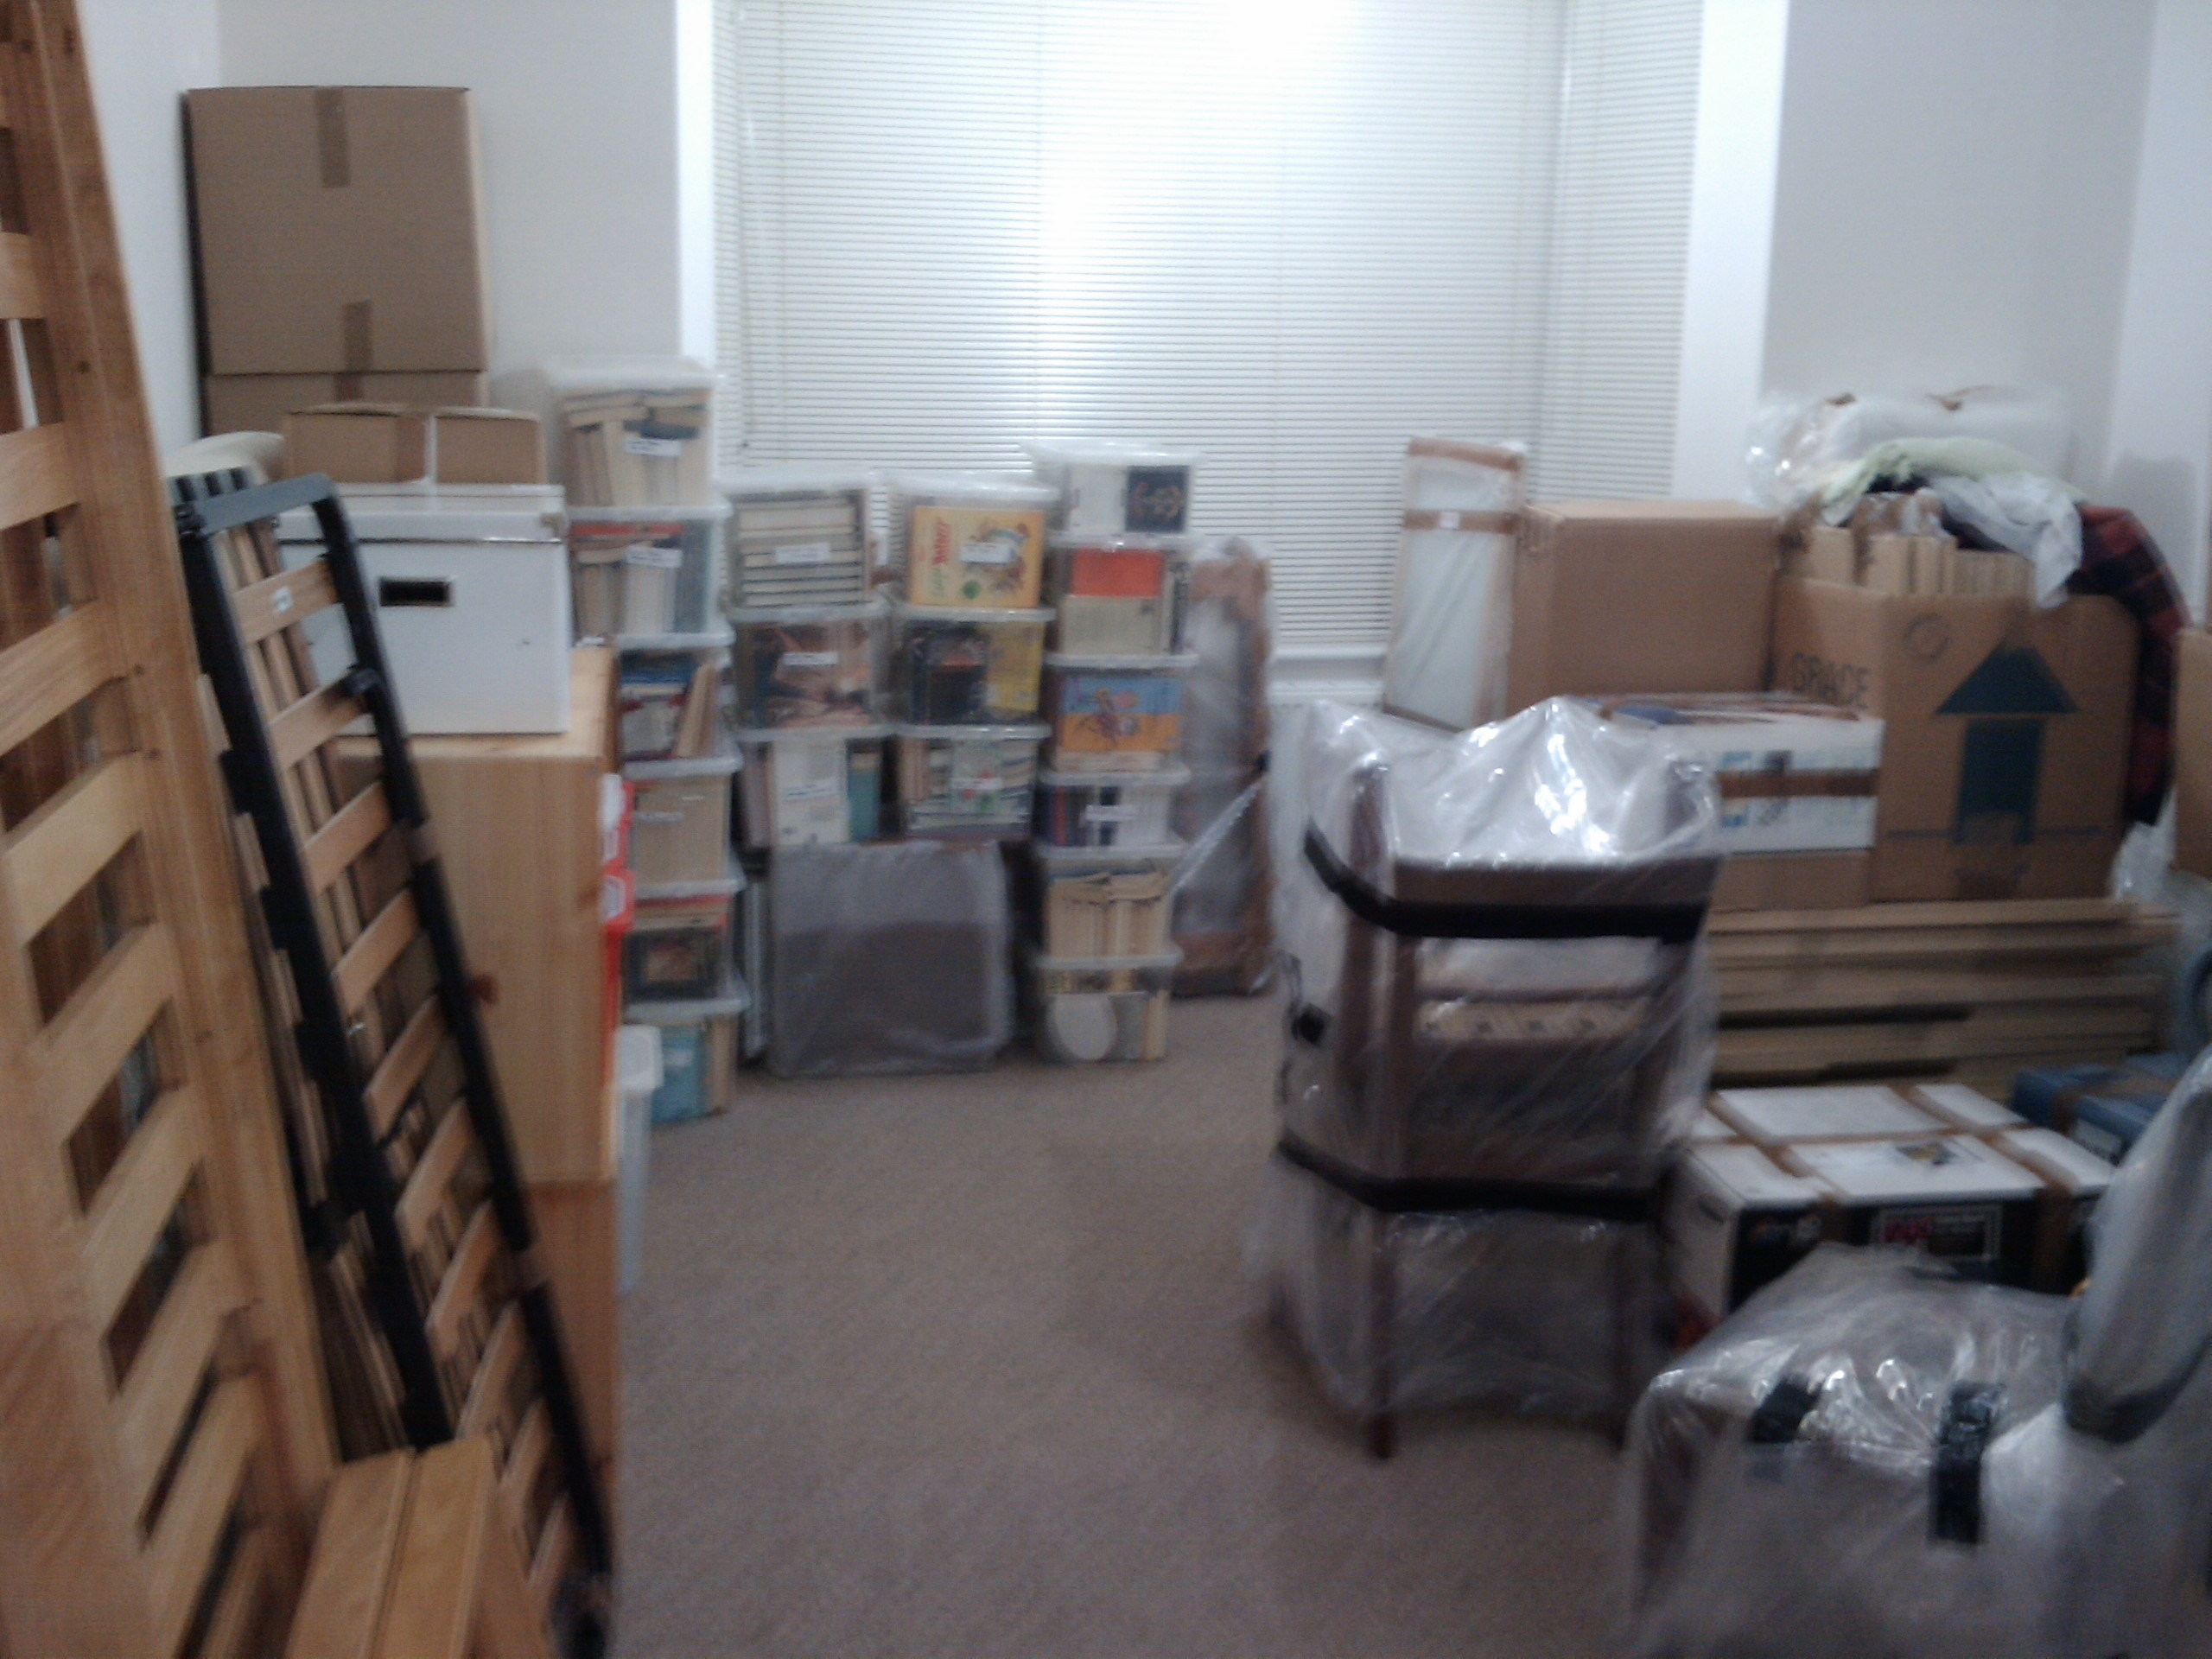 Boxes, boxes everywhere...